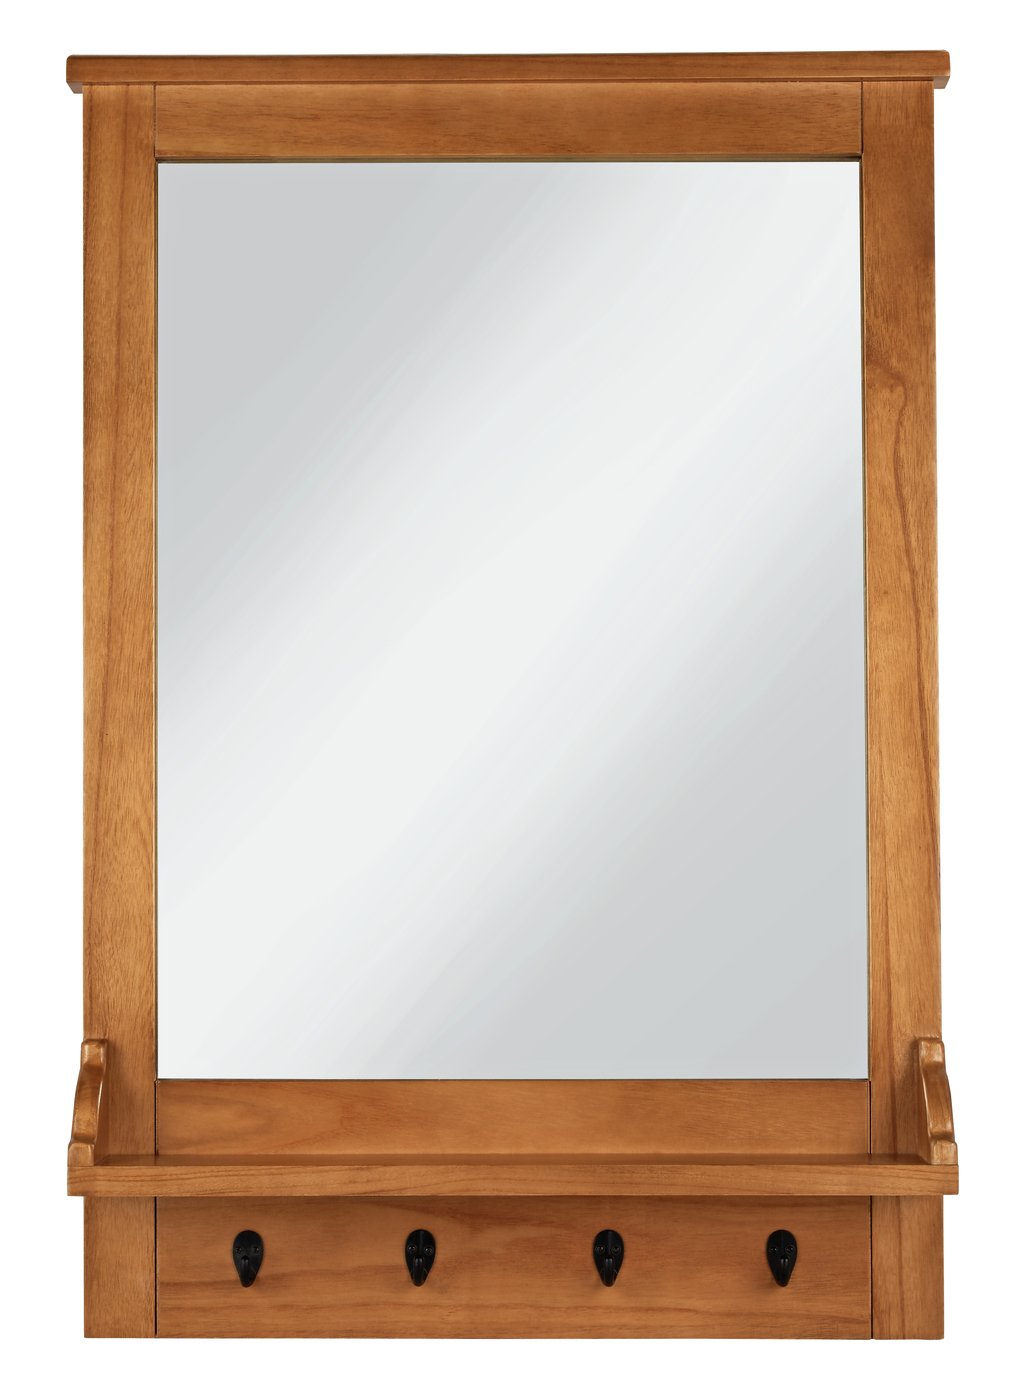 Argos Home Wall Mirror with Hooks - Wood